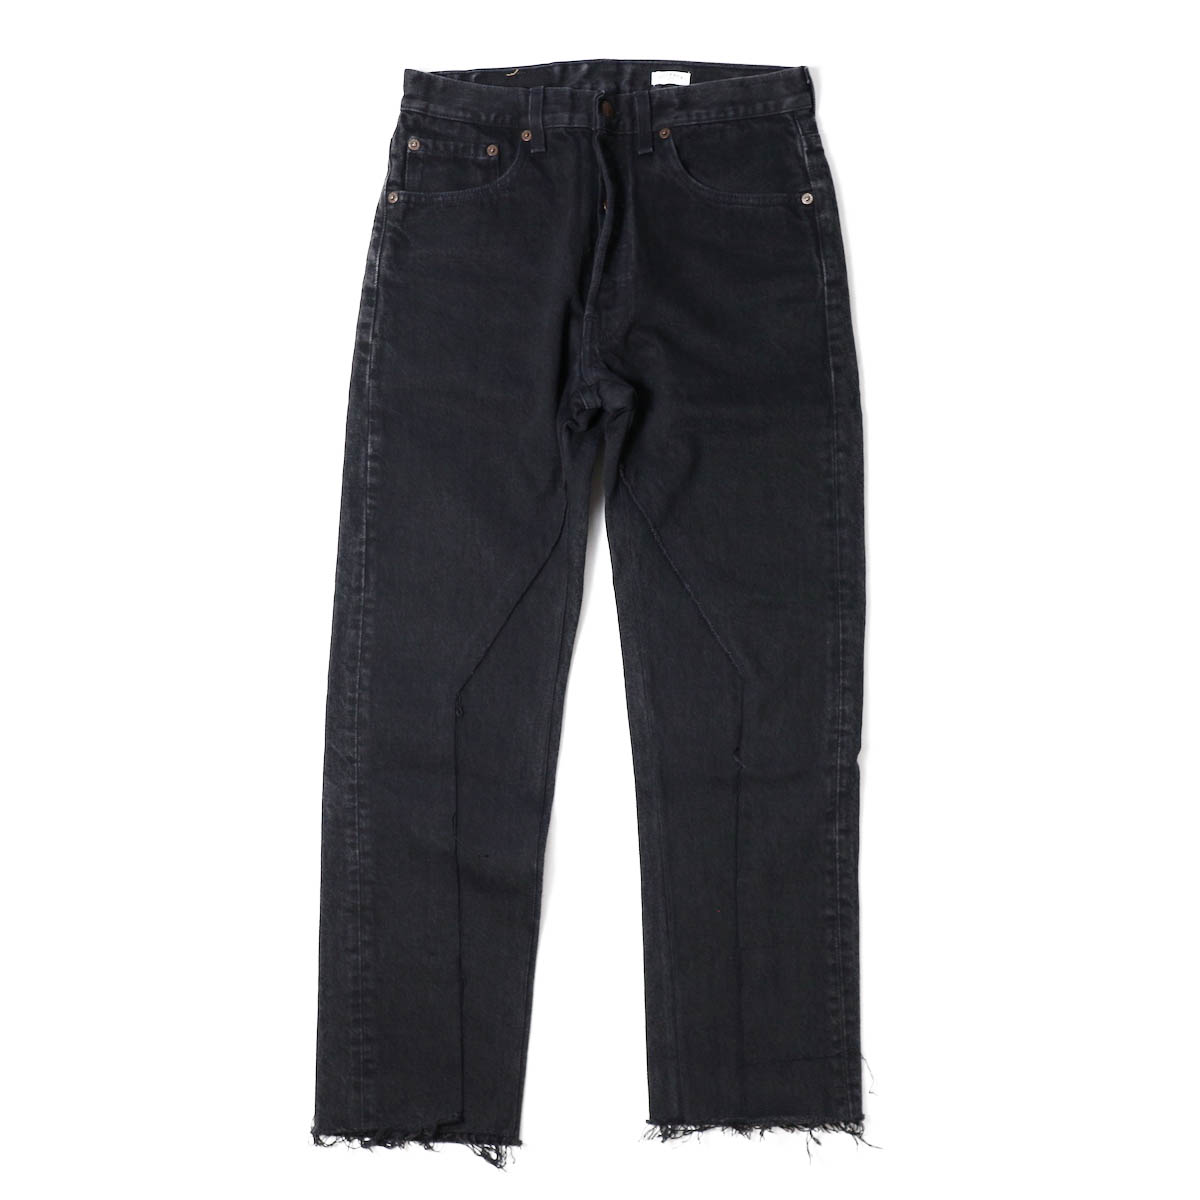 OLD PARK / SLIT JEANS BLACK Ssize -(G)